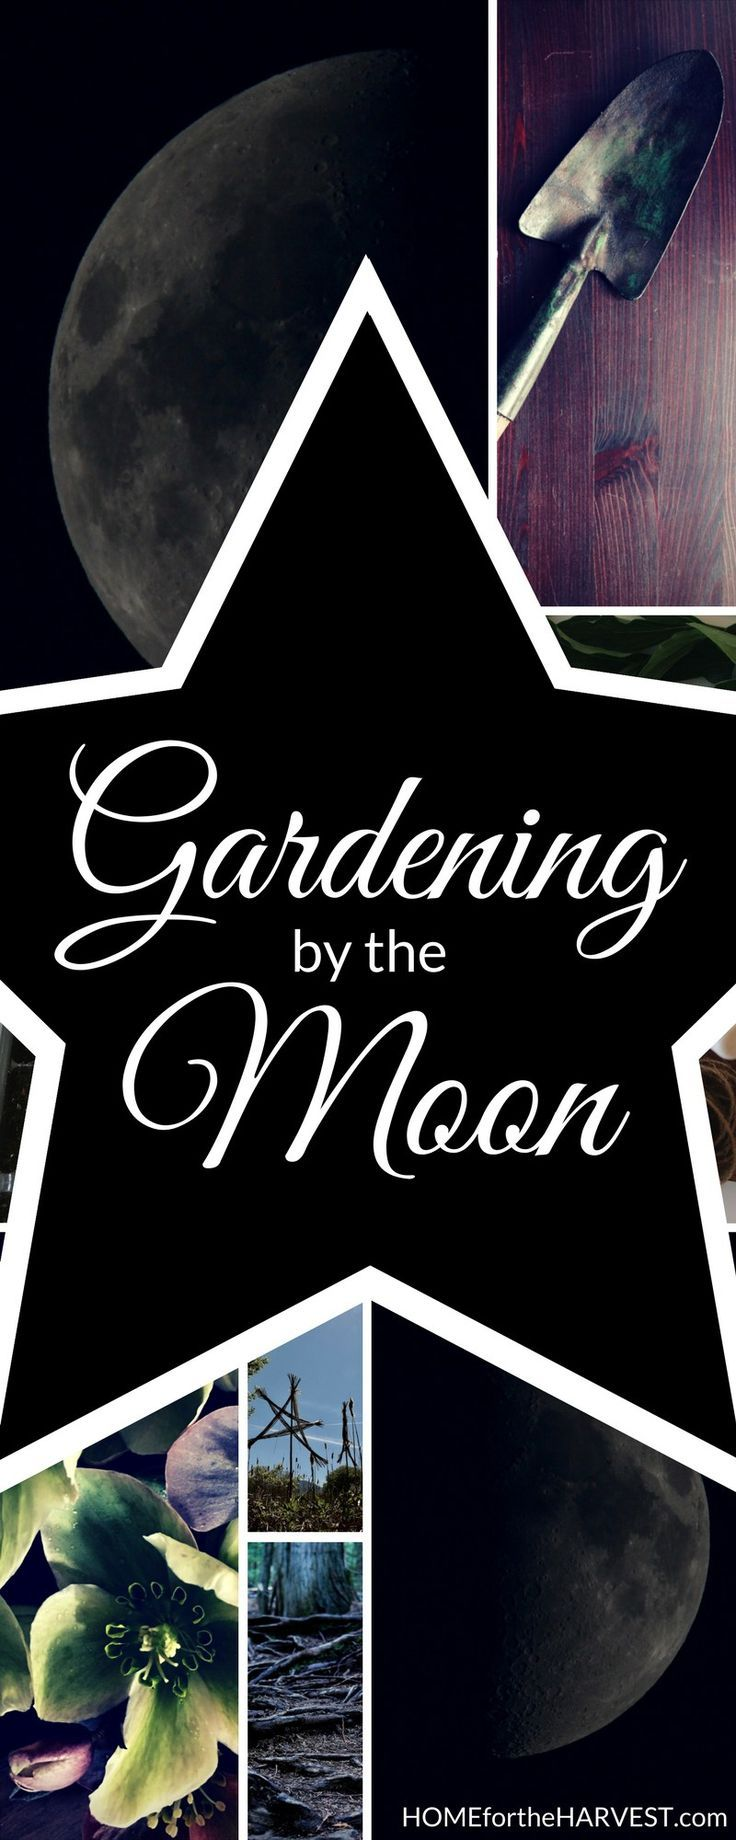 Aligning your garden planting schedule with the lunar cycles - includes basic, intermediate, and advanced methods of gardening by the moon   Home for the Harvest